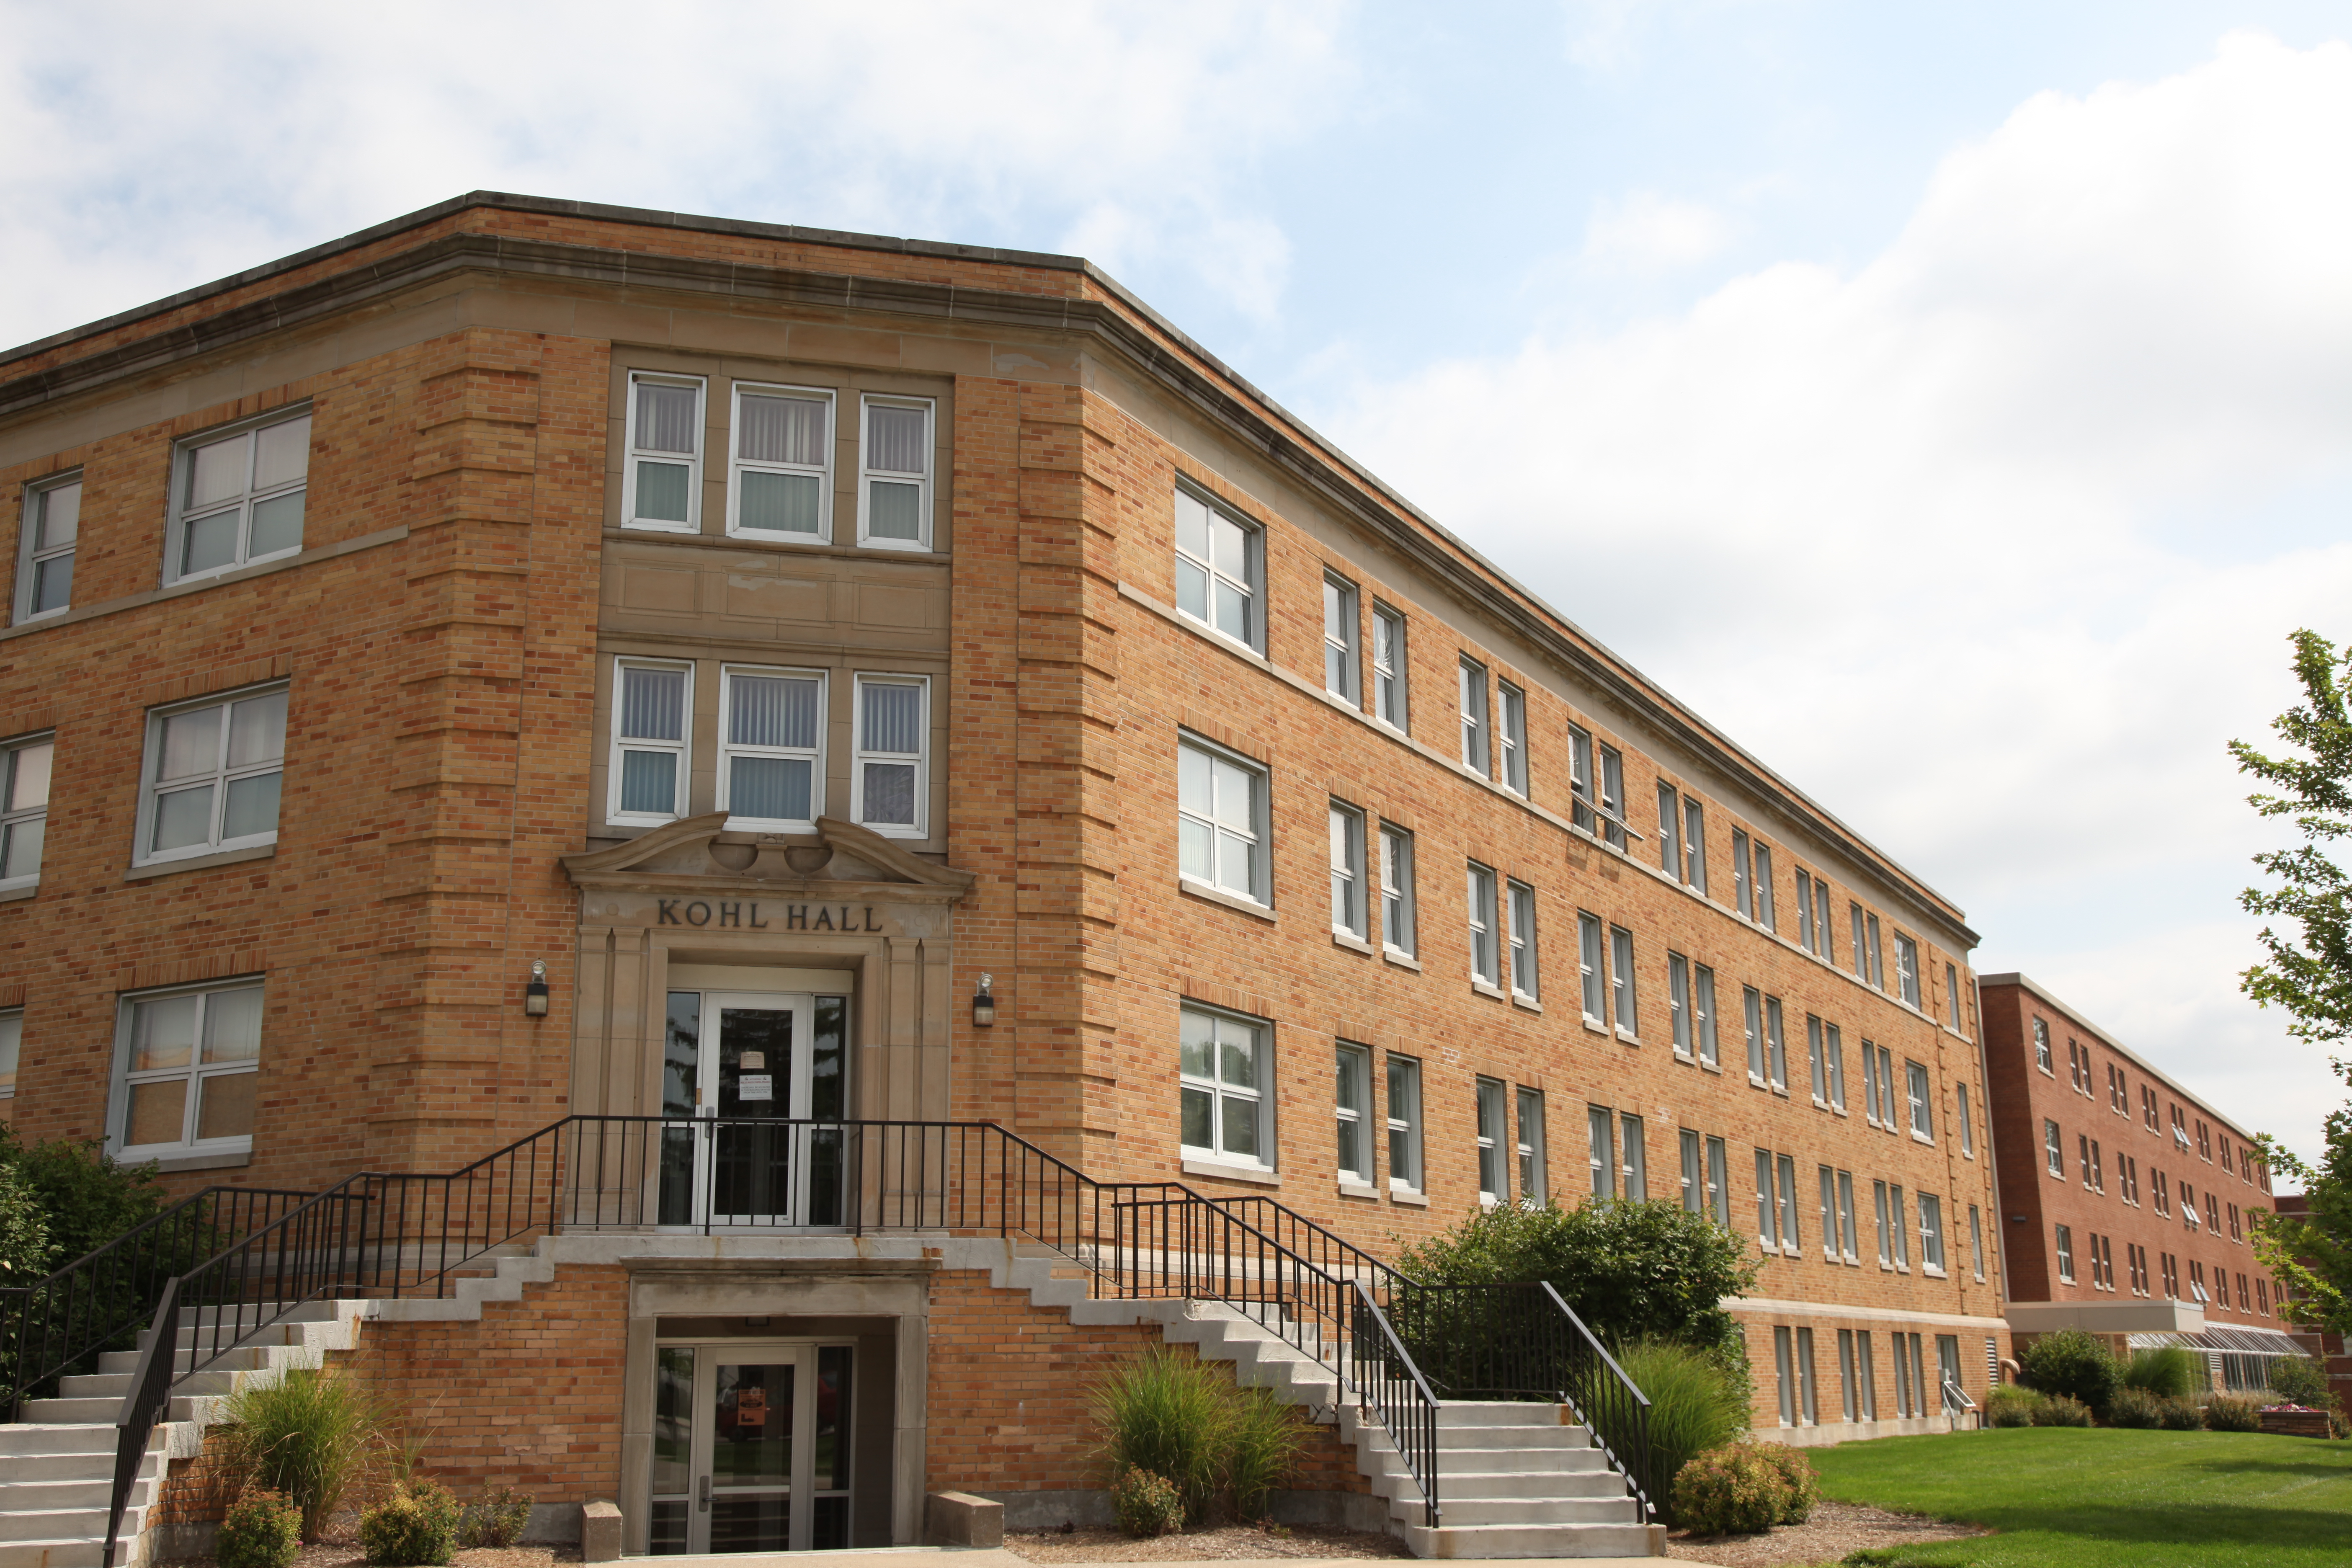 Learn more about Kohl Hall